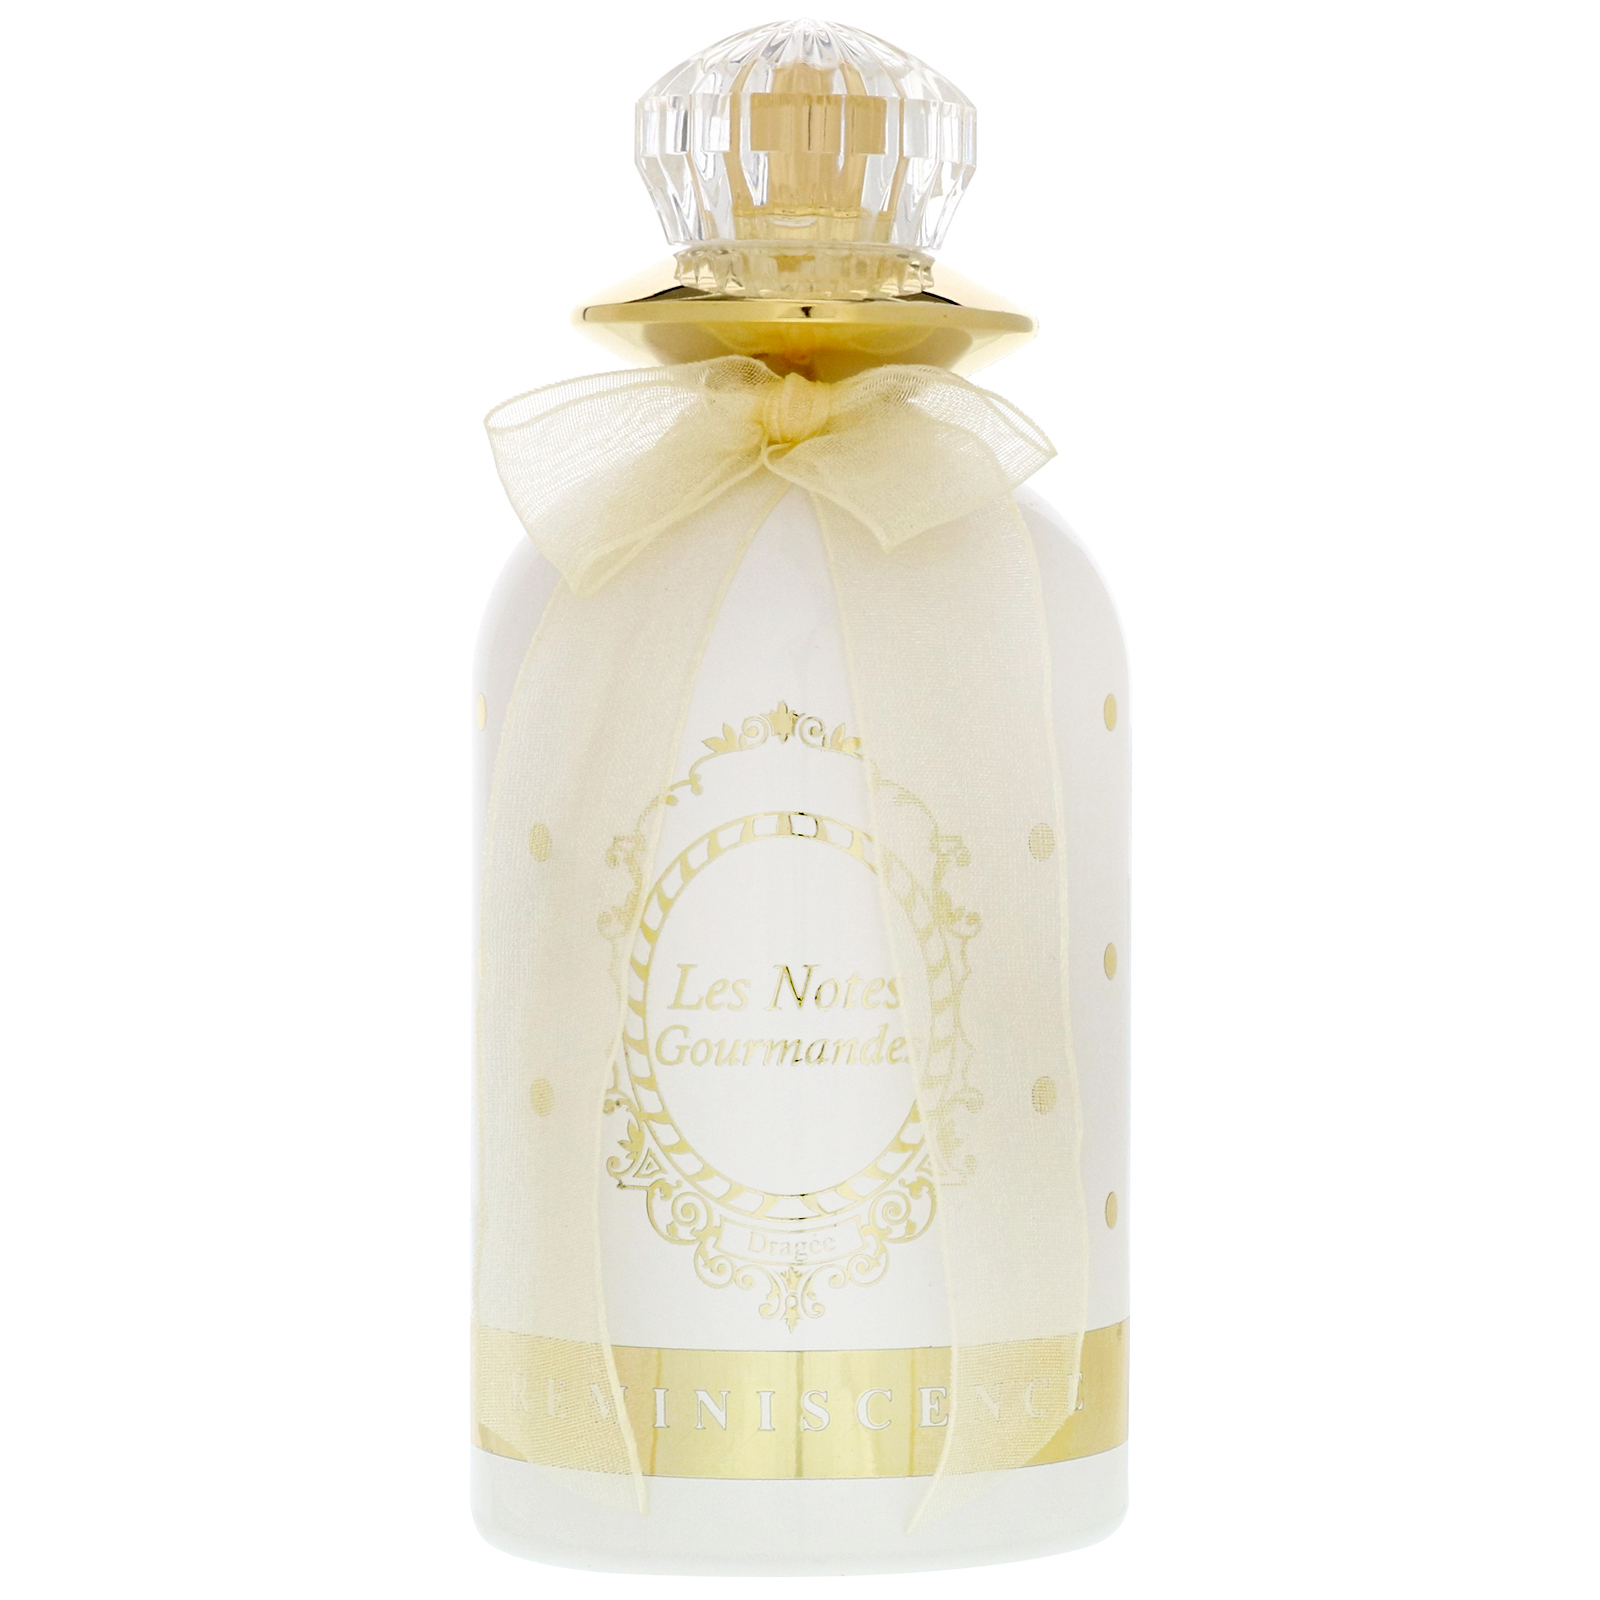 Reminiscence Dragée Eau de Parfum Spray 100ml